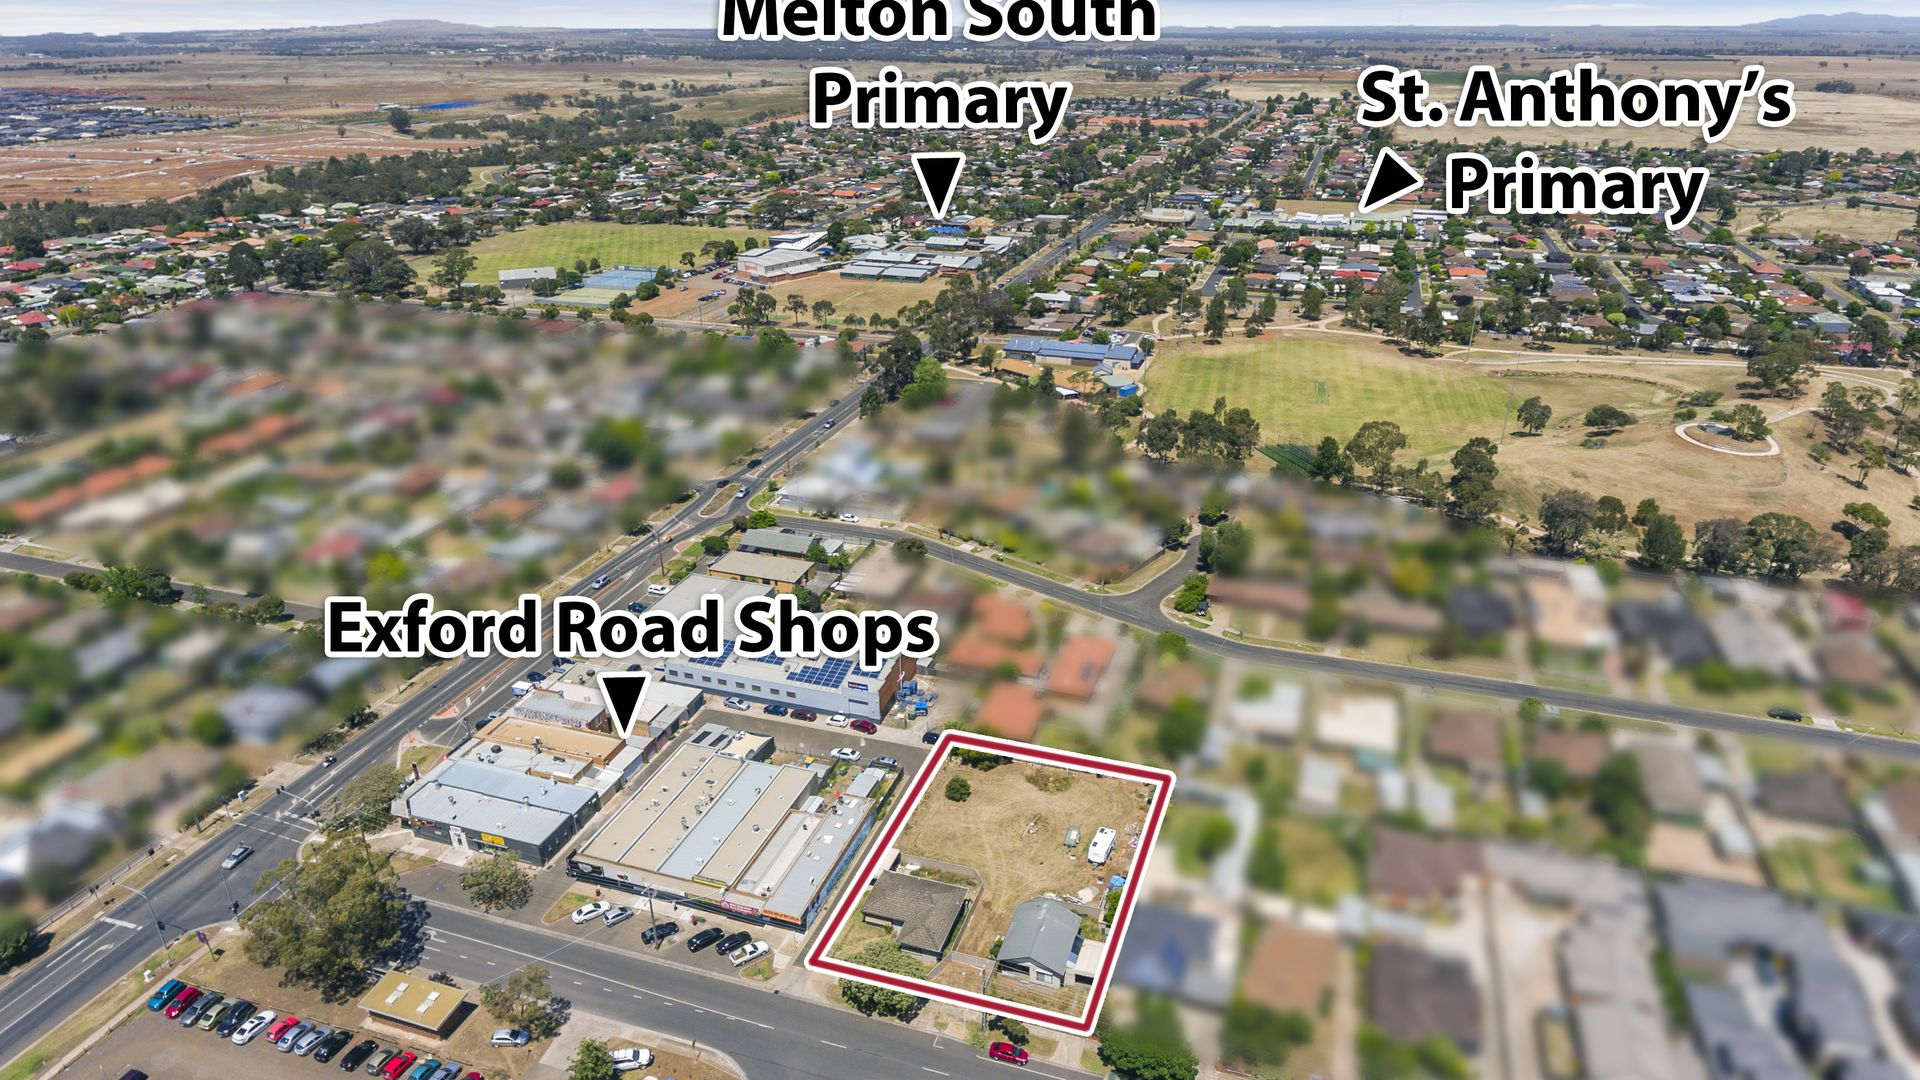 13-15 Staughton Street, Melton South VIC 3338, Image 1